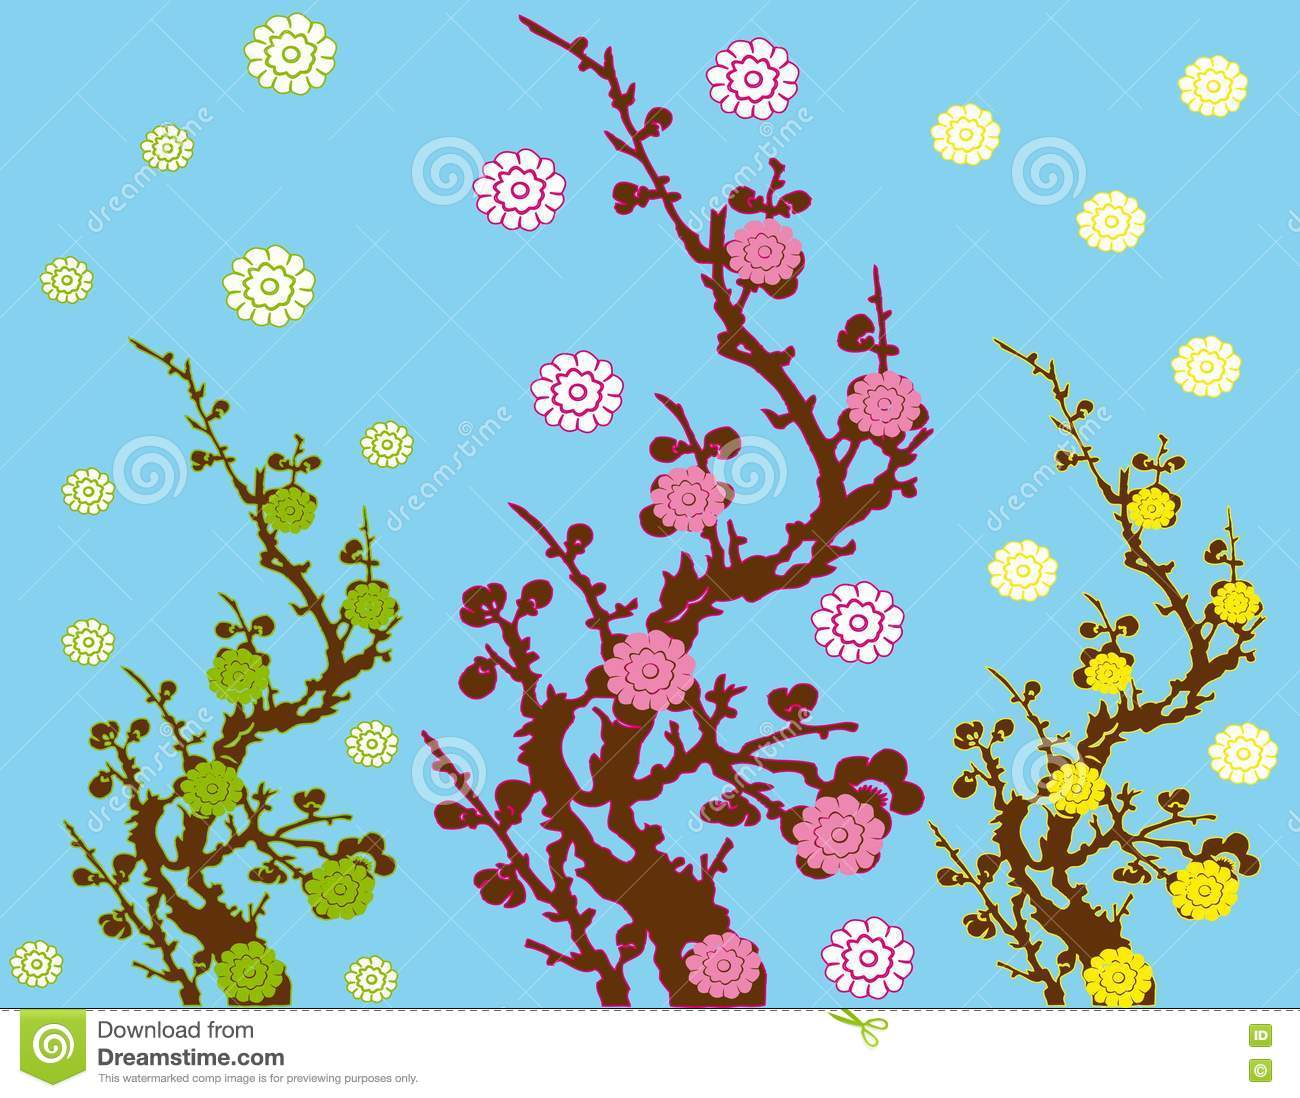 Spring Illustration - Viewing Gallery